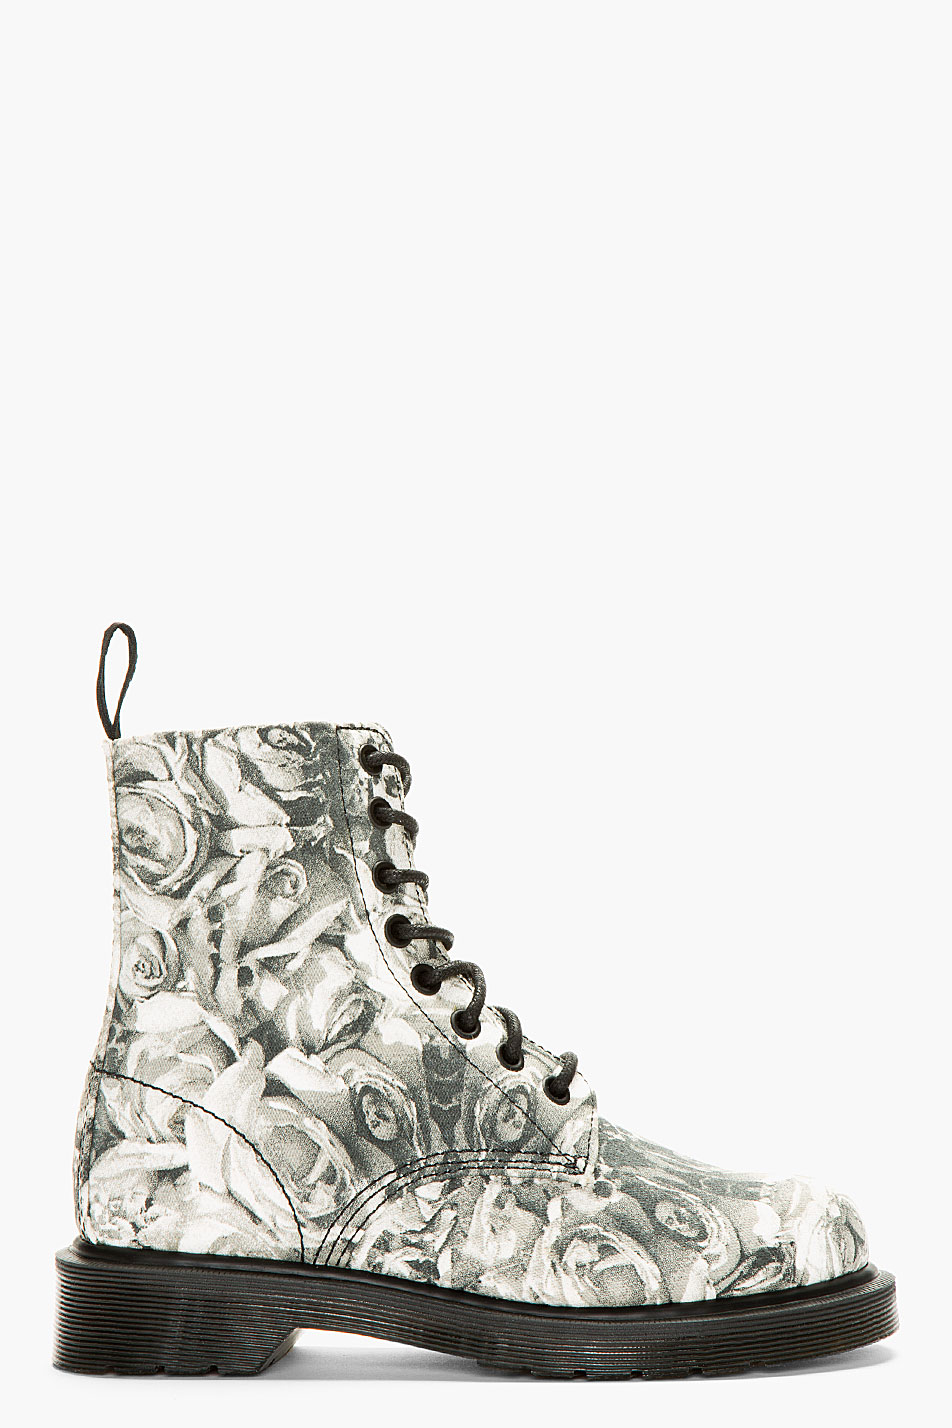 dr martens grey canvas skull and rose print becket 8 eye boots in gray lyst. Black Bedroom Furniture Sets. Home Design Ideas